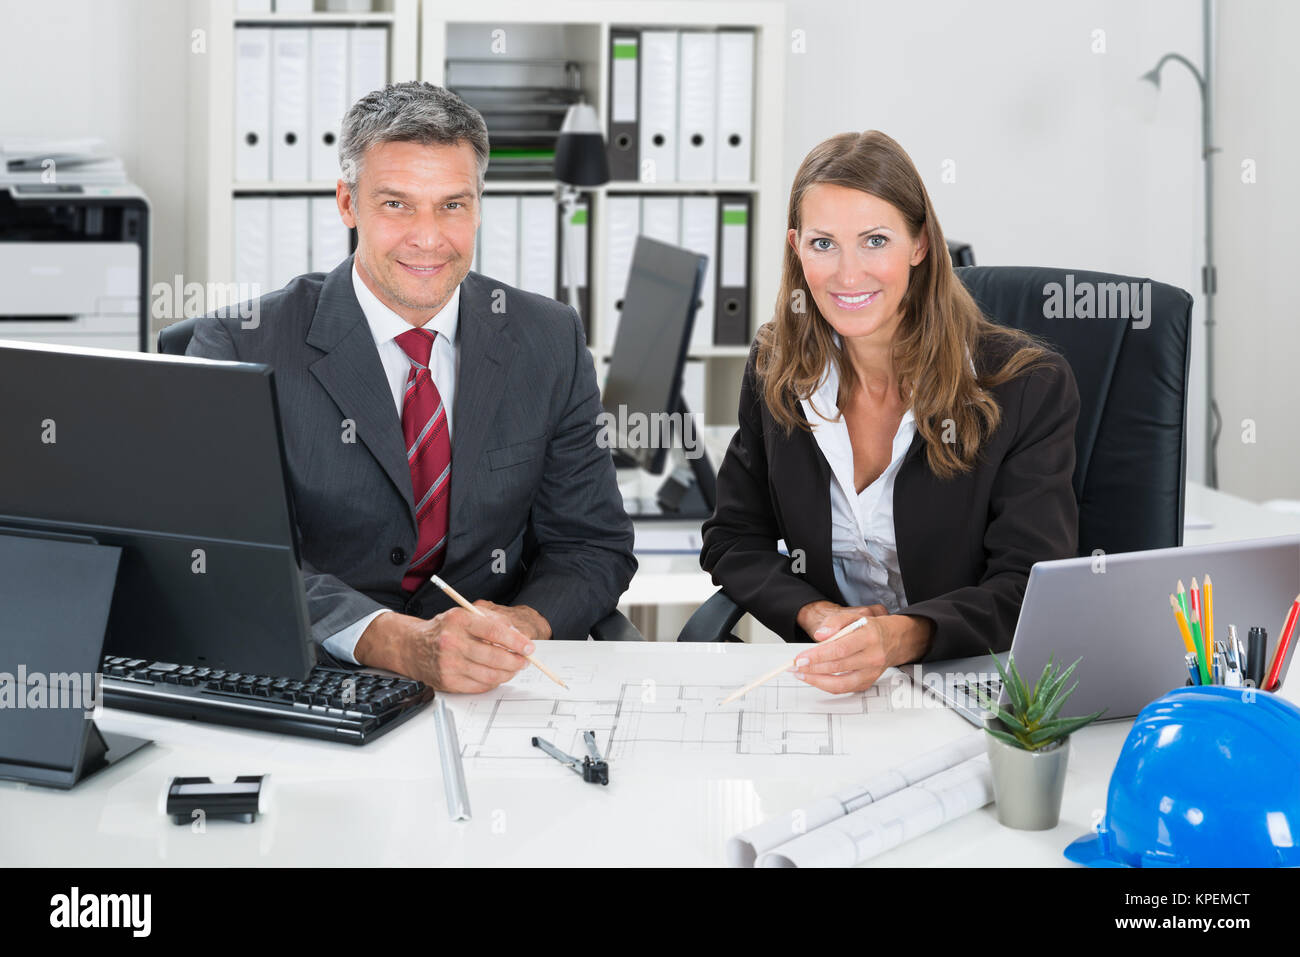 Architects Working On Blueprint At Desk - Stock Image